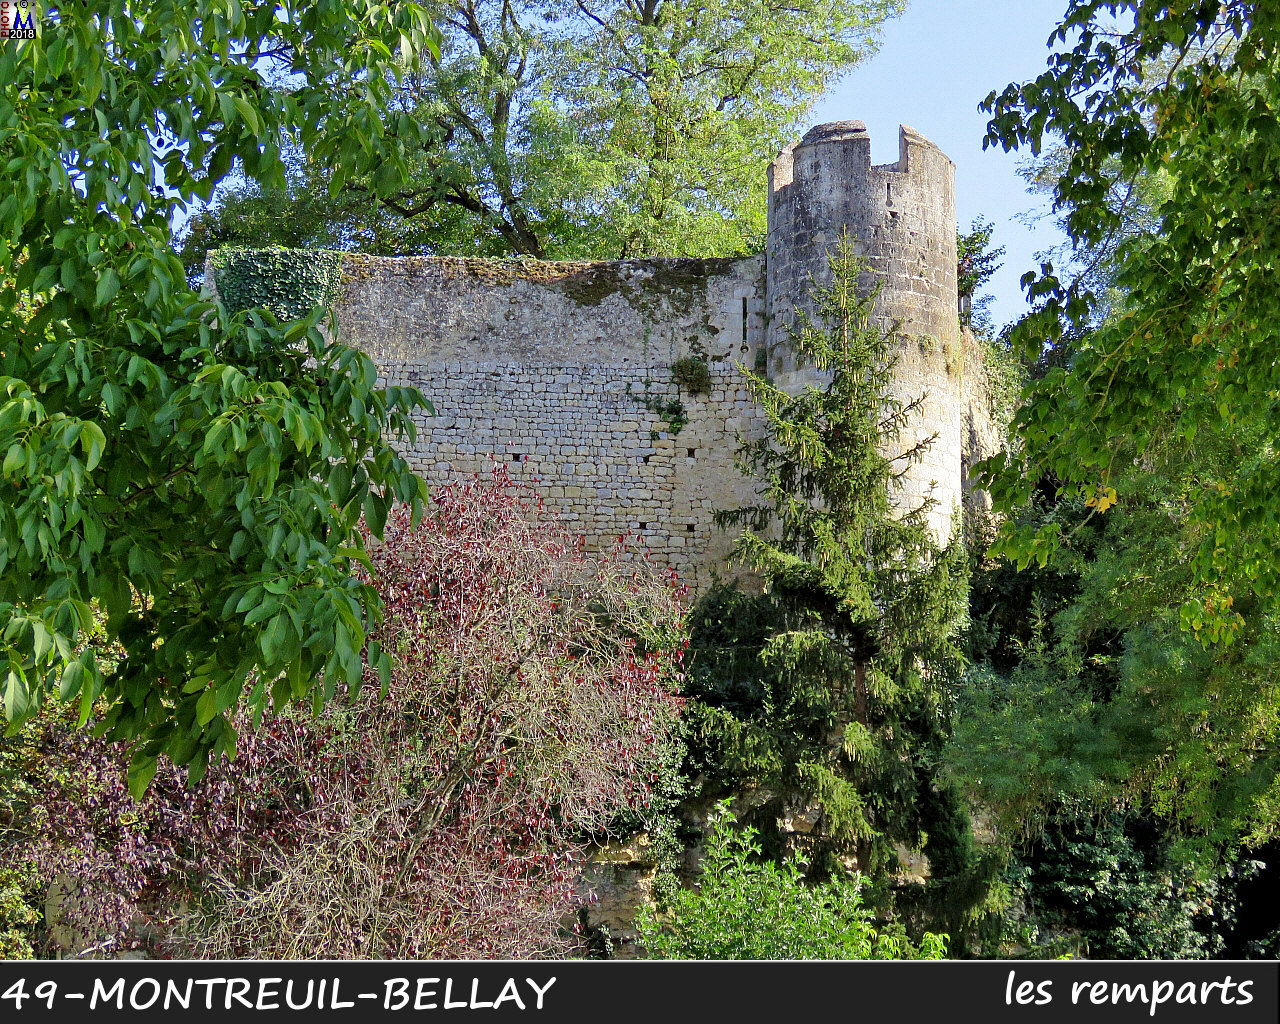 49MONTREUIL-BELLAY_remparts_1024.jpg